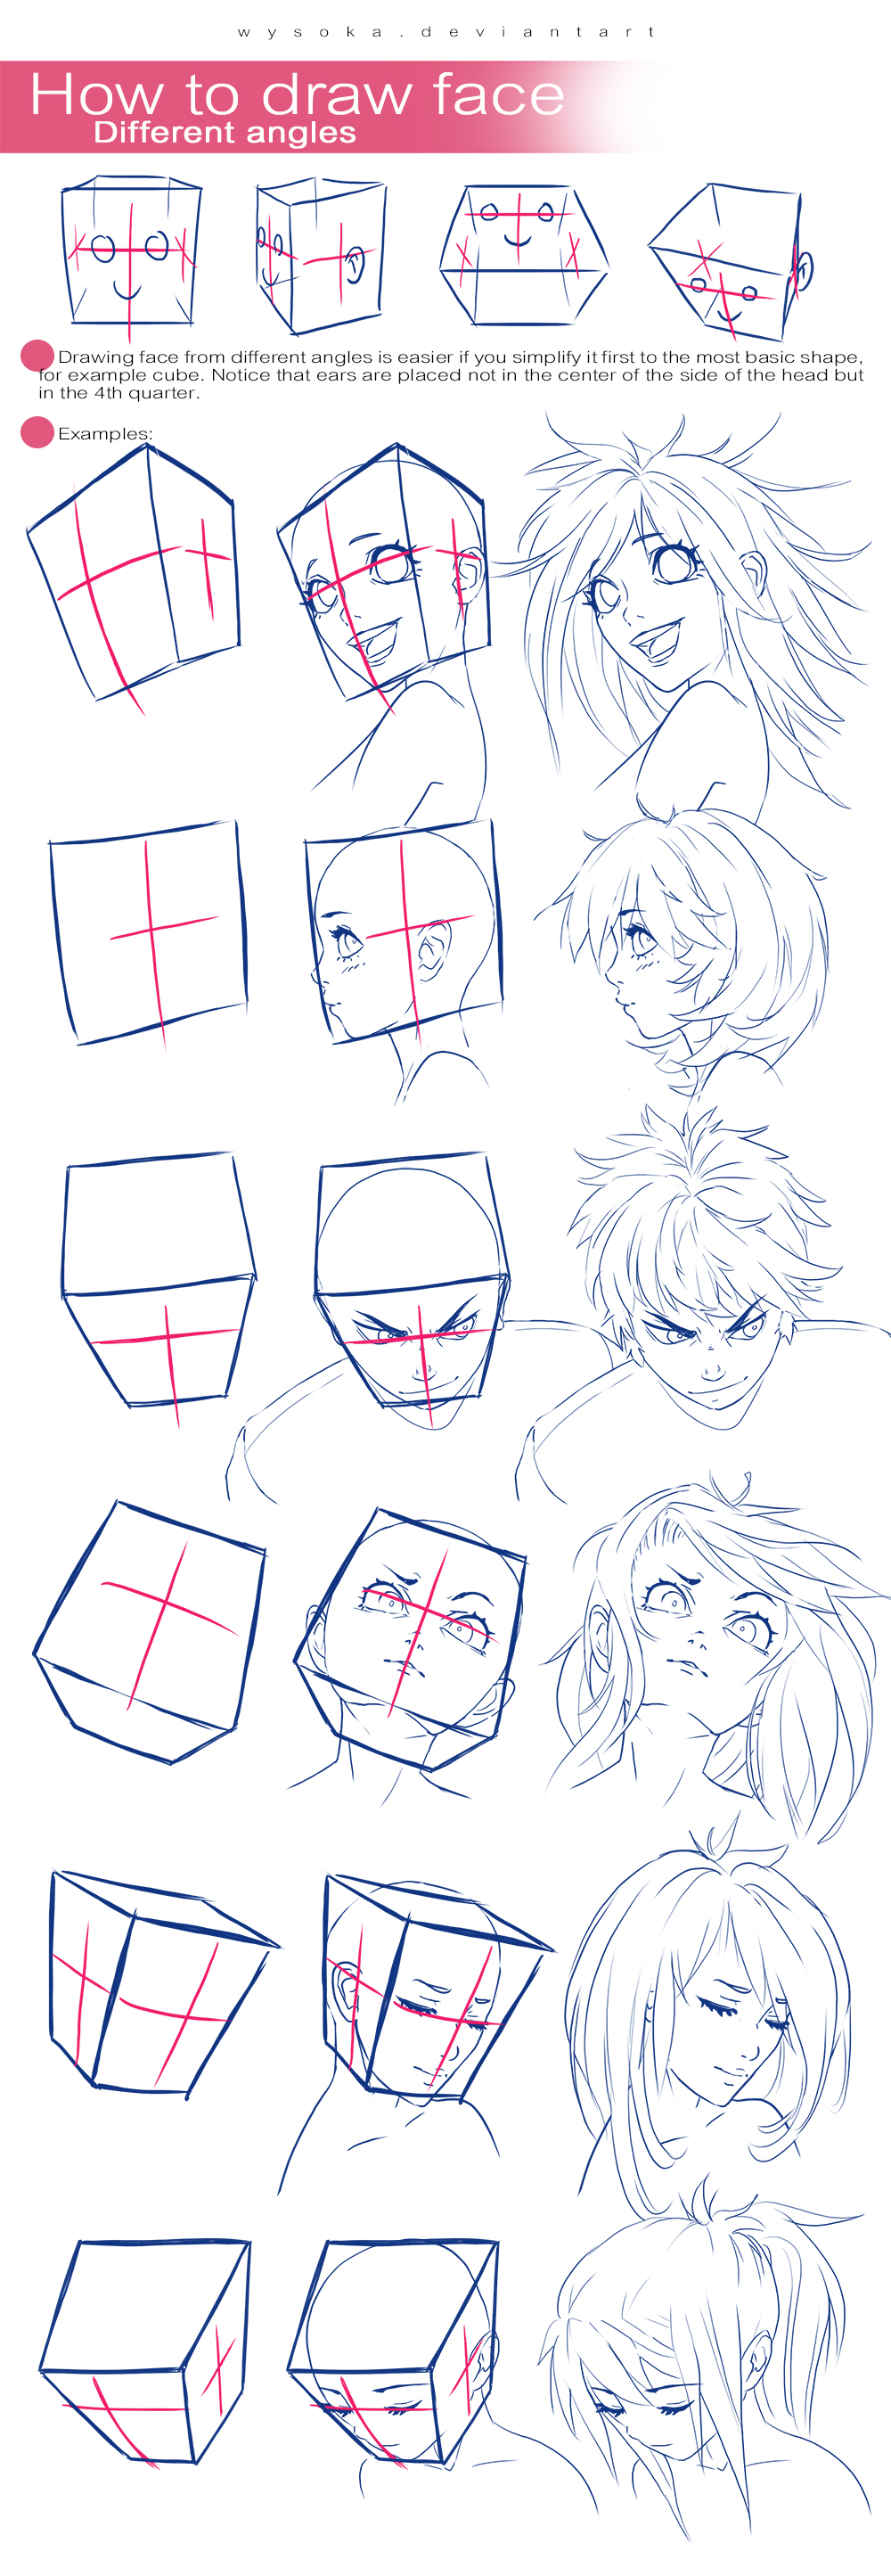 How To Draw Face - Different Angles by wysoka on DeviantArt